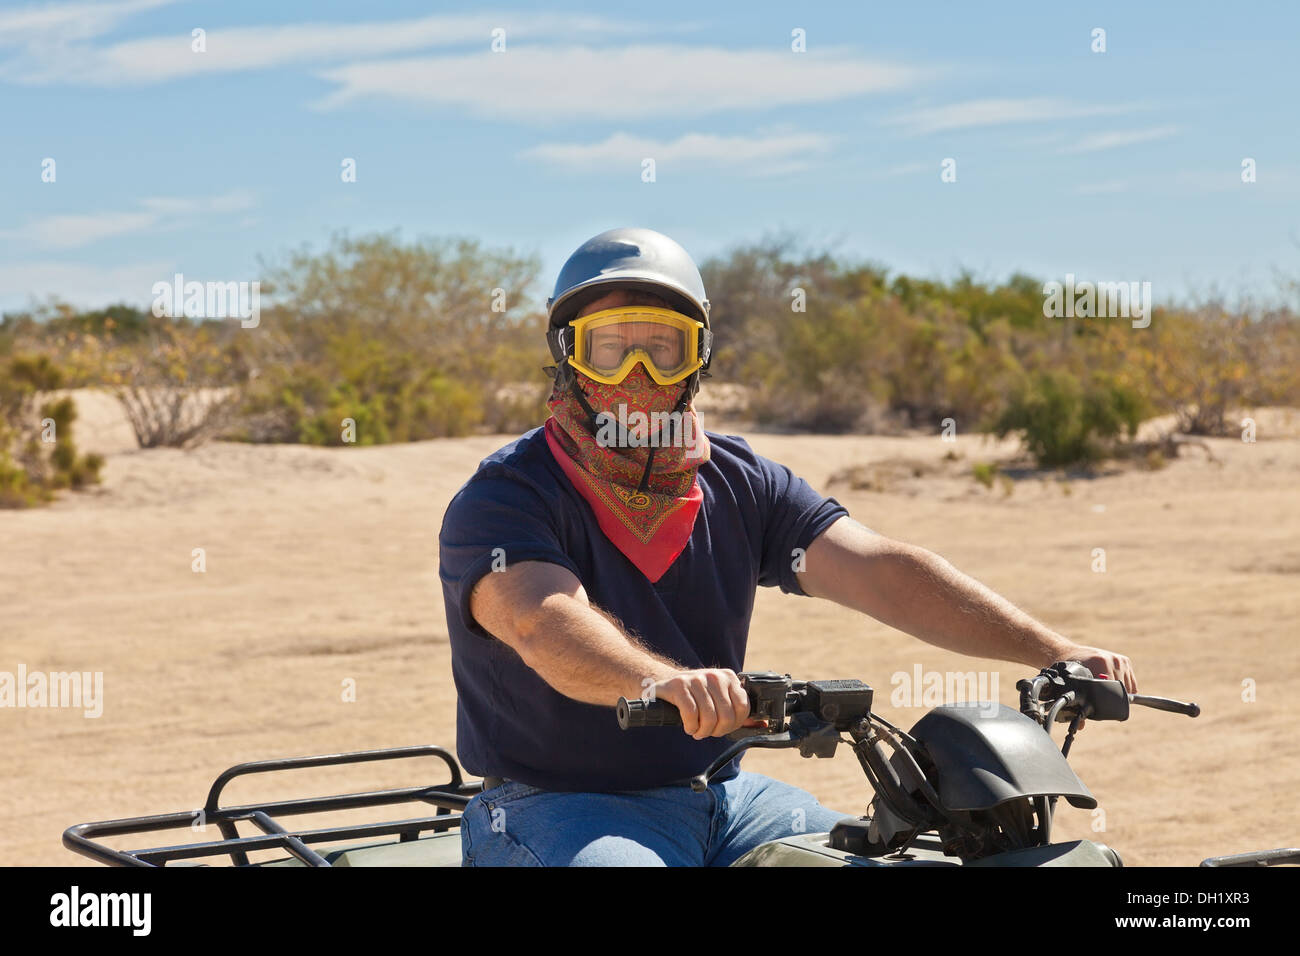 Male ATV Driver riding in the desert of Cabo San Lucas, Mexico - Stock Image